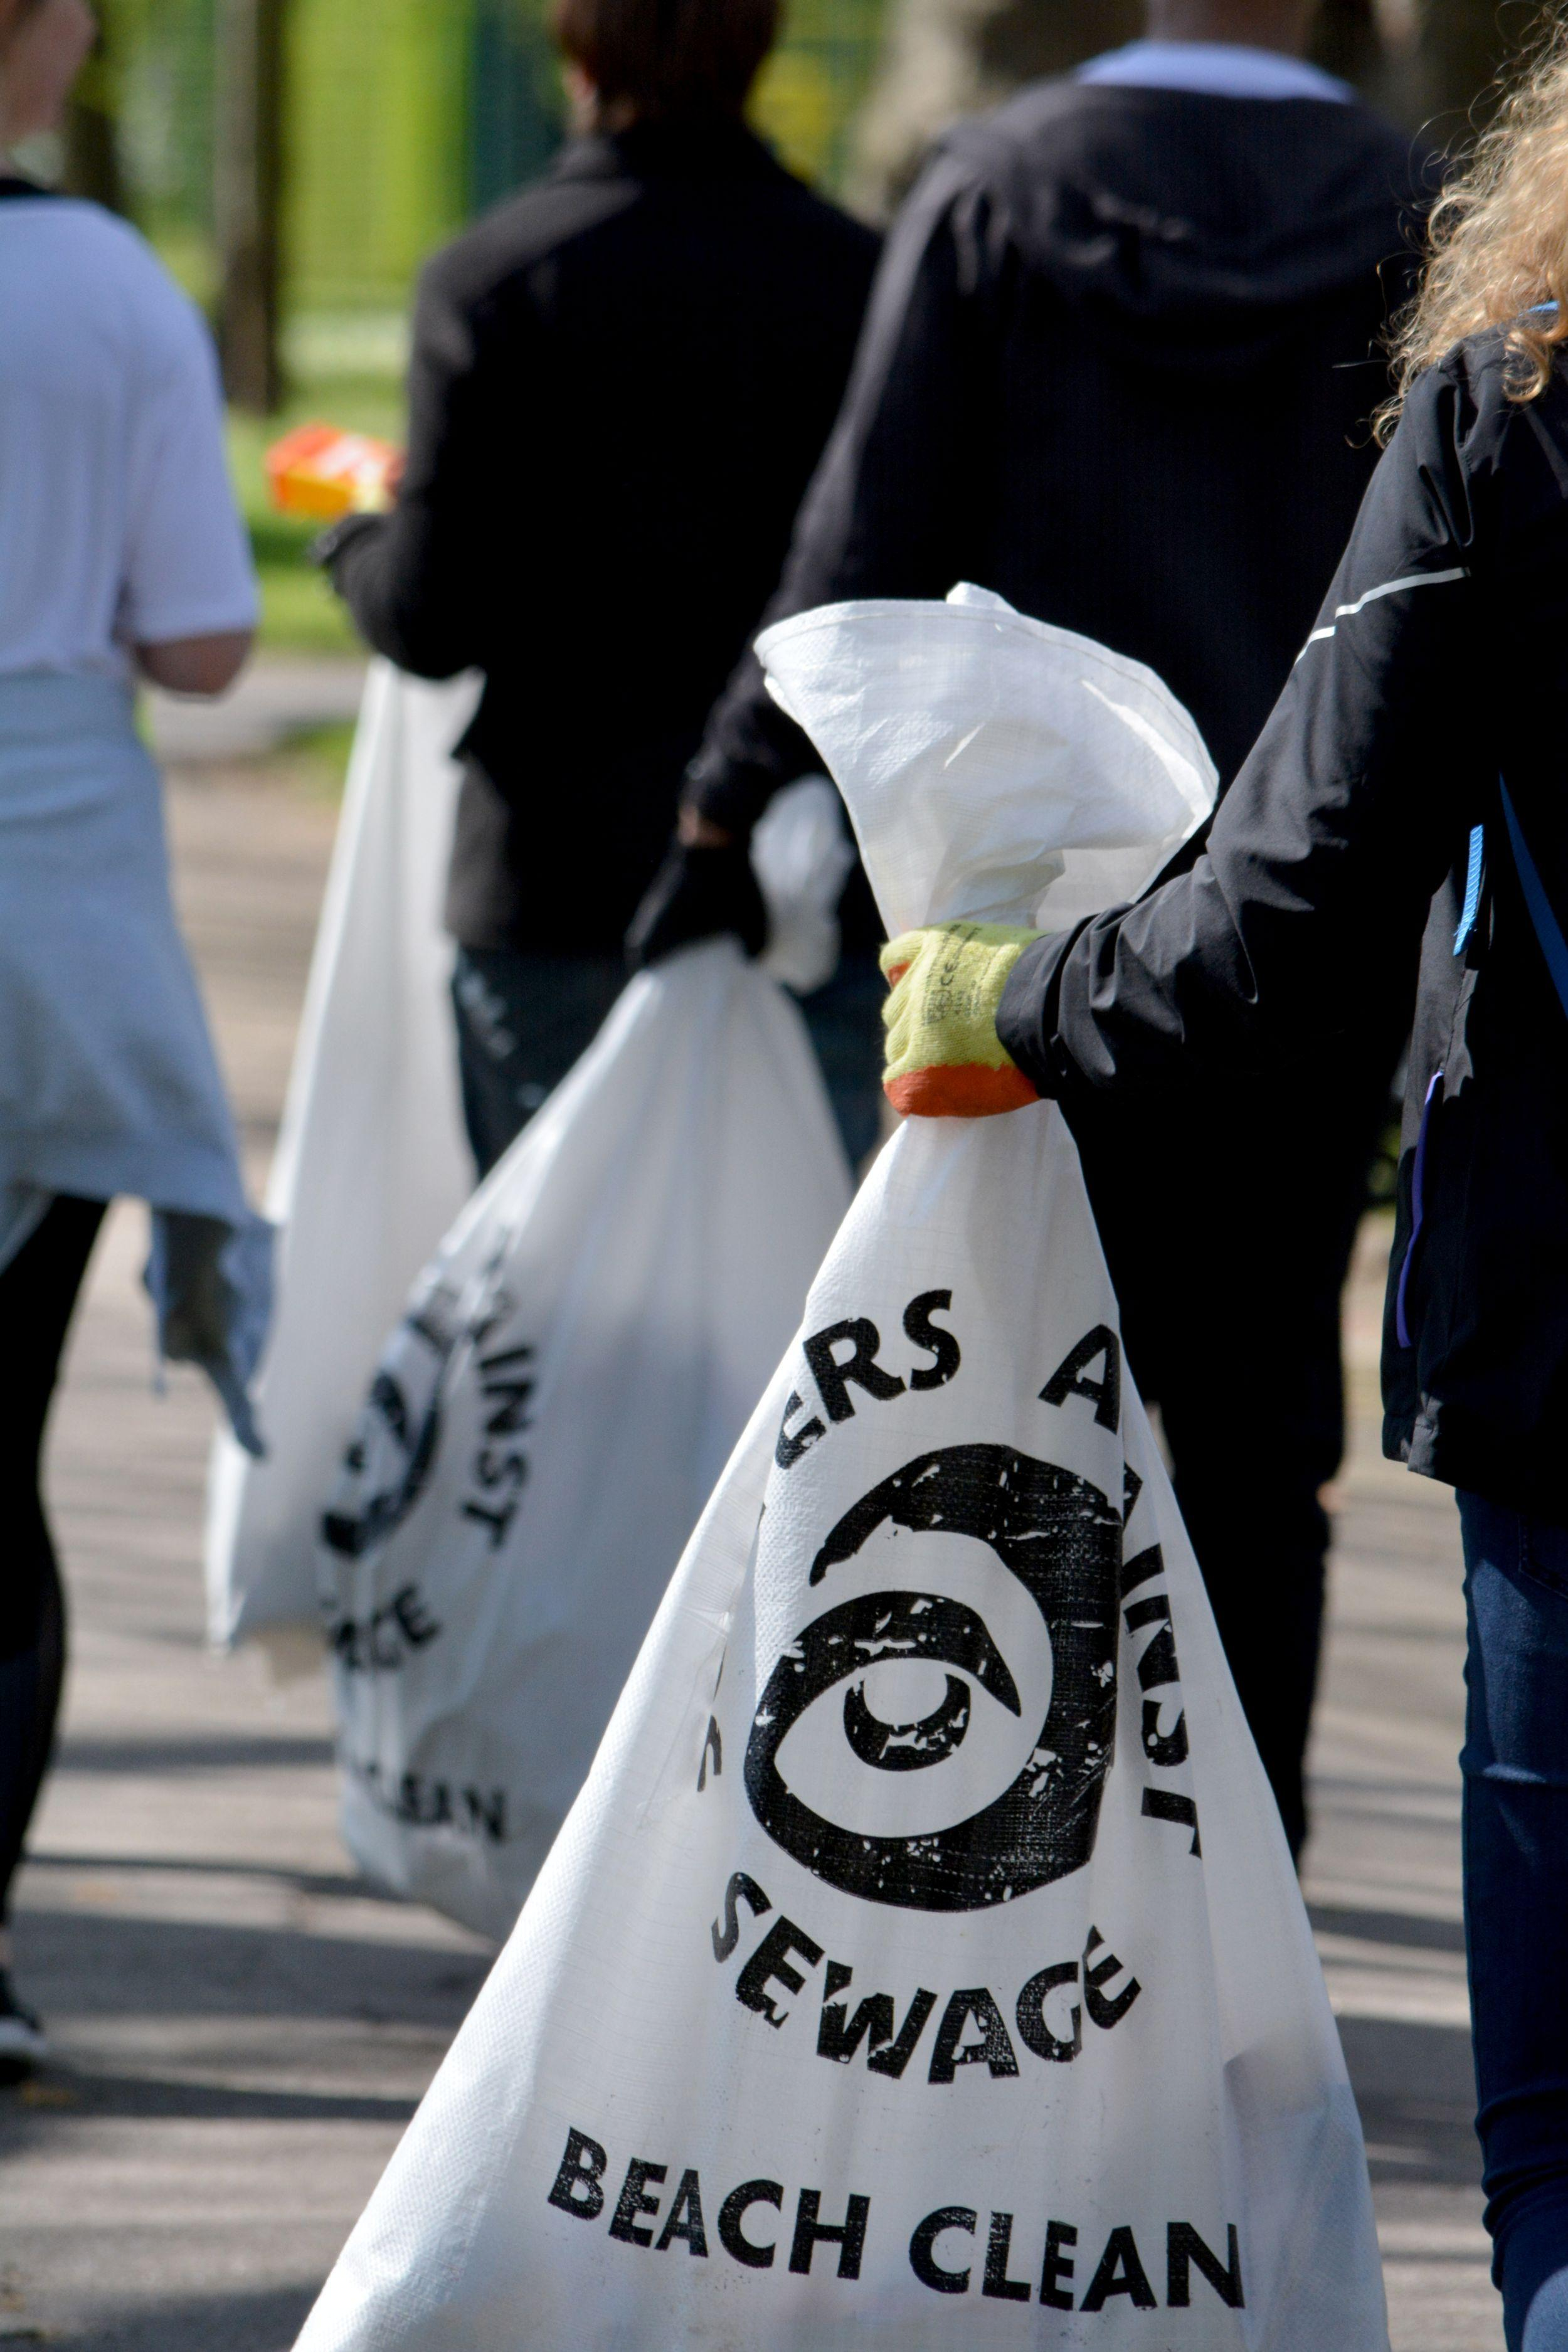 Group of people carrying refuse sacks filled with litter